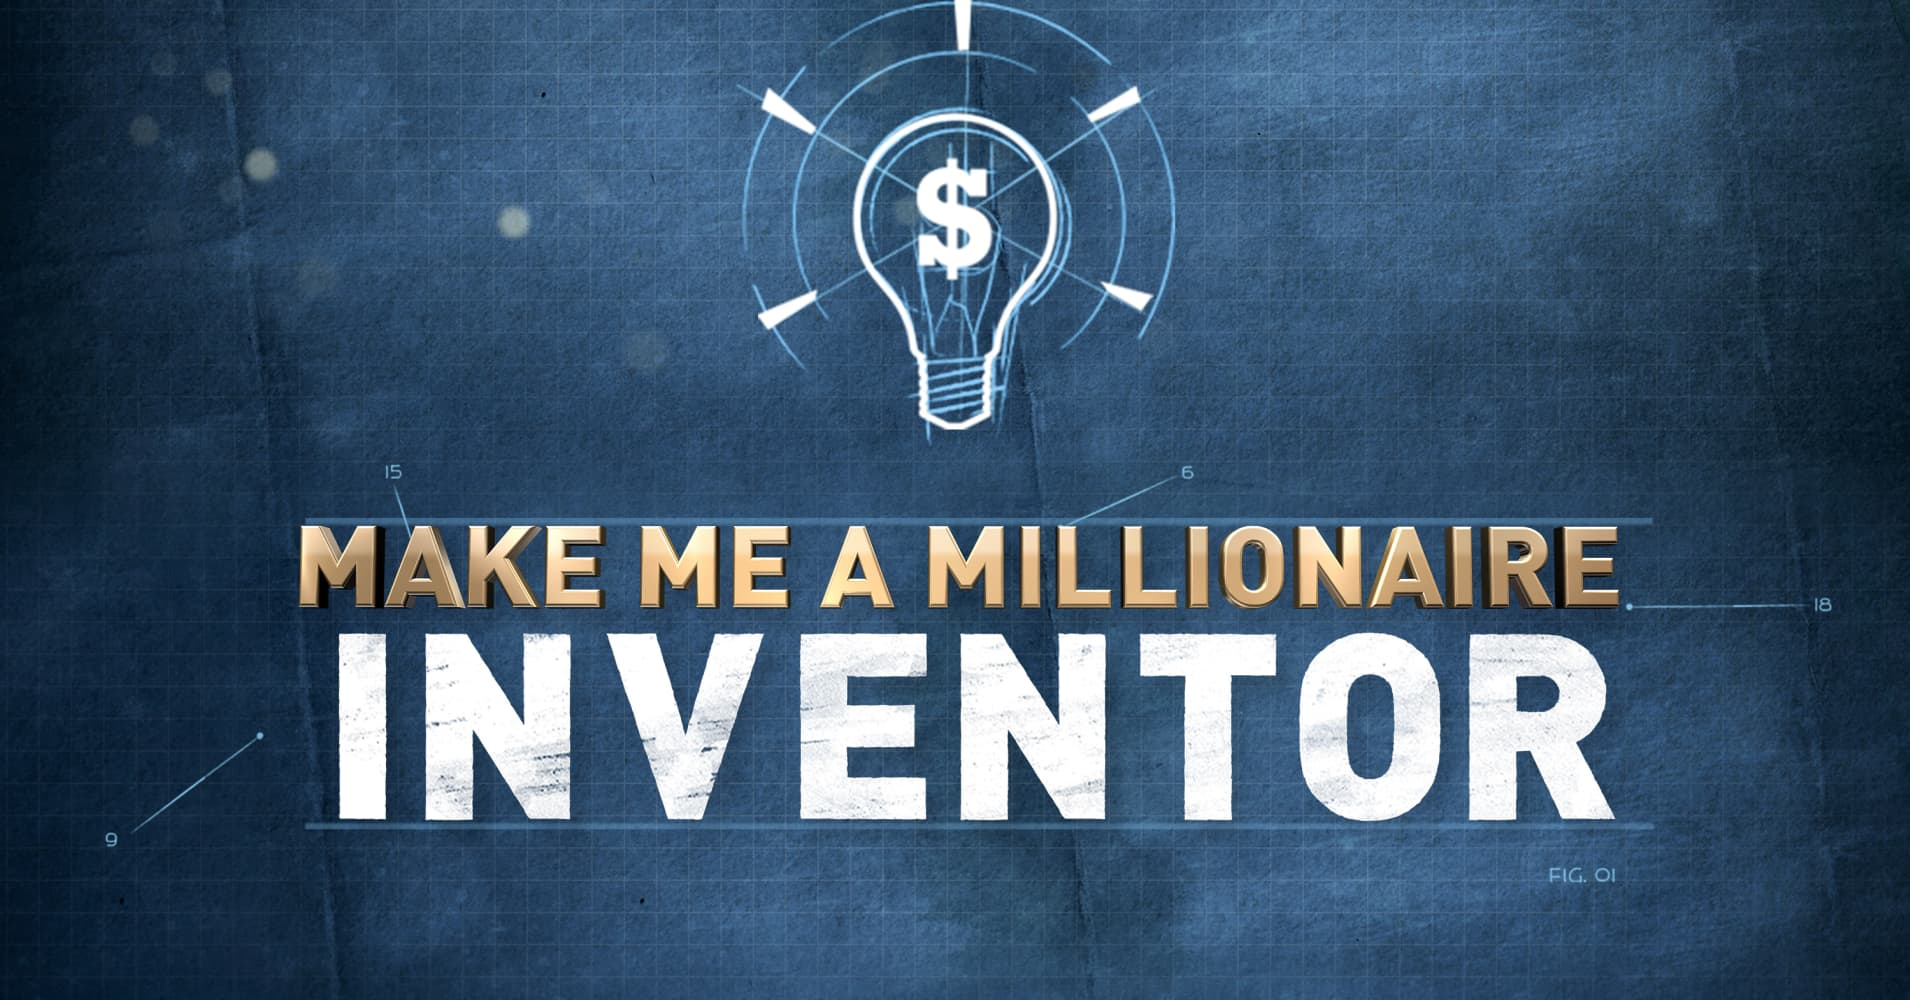 Make me a millionaire inventor home cnbc prime malvernweather Gallery